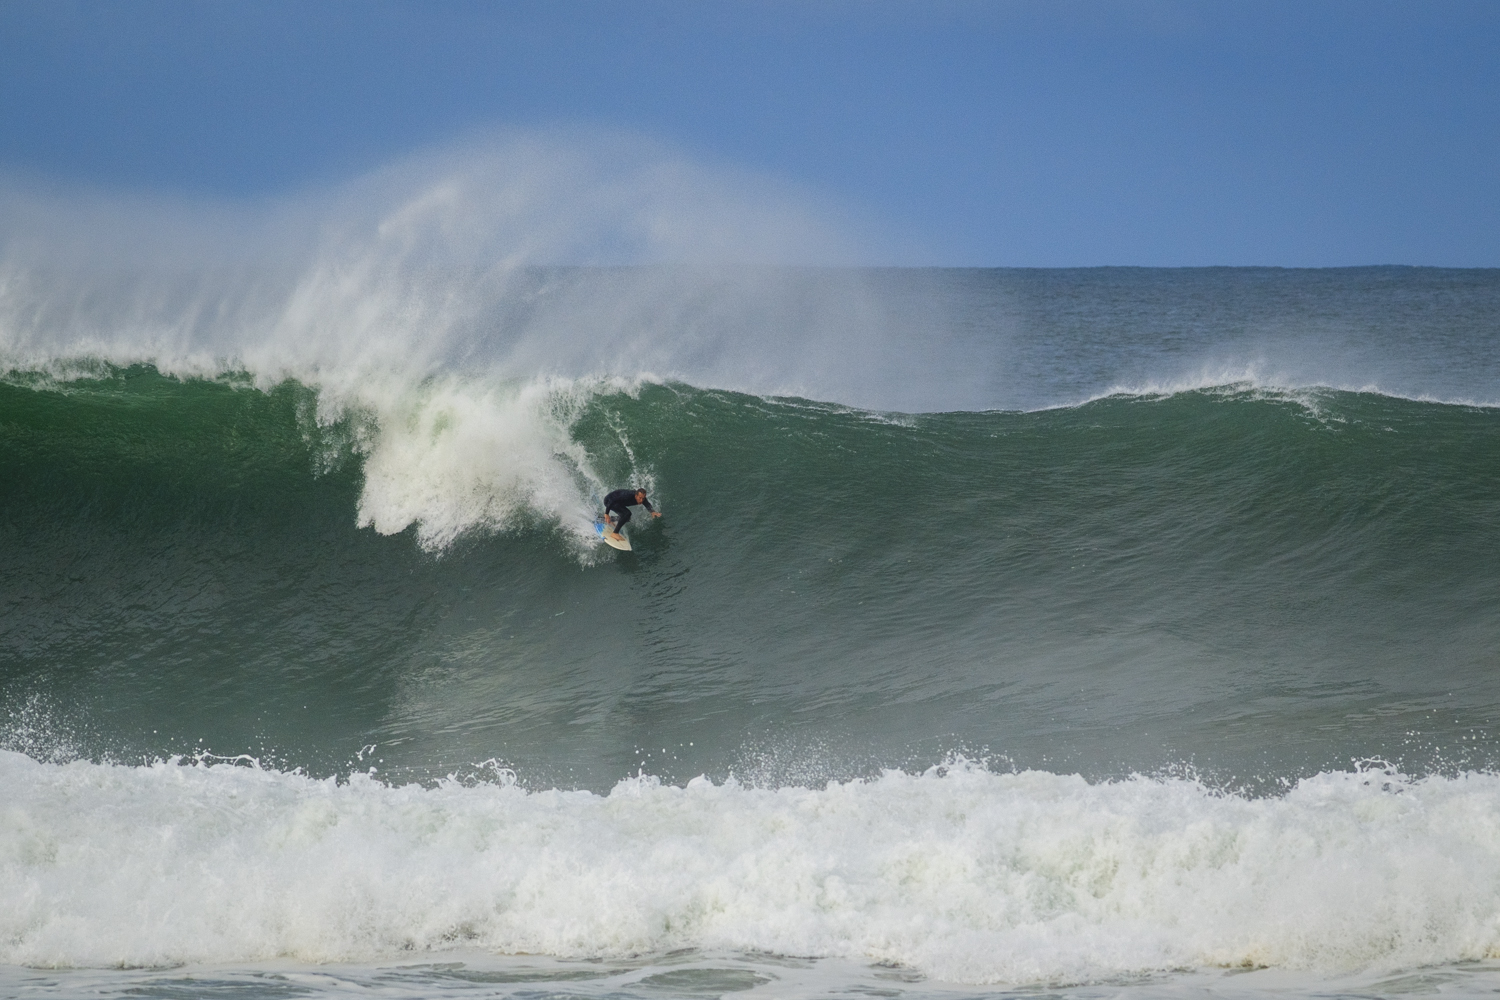 One of the biggest beachie waves i've ever seen. North Avoca on Tuesday afternoon.